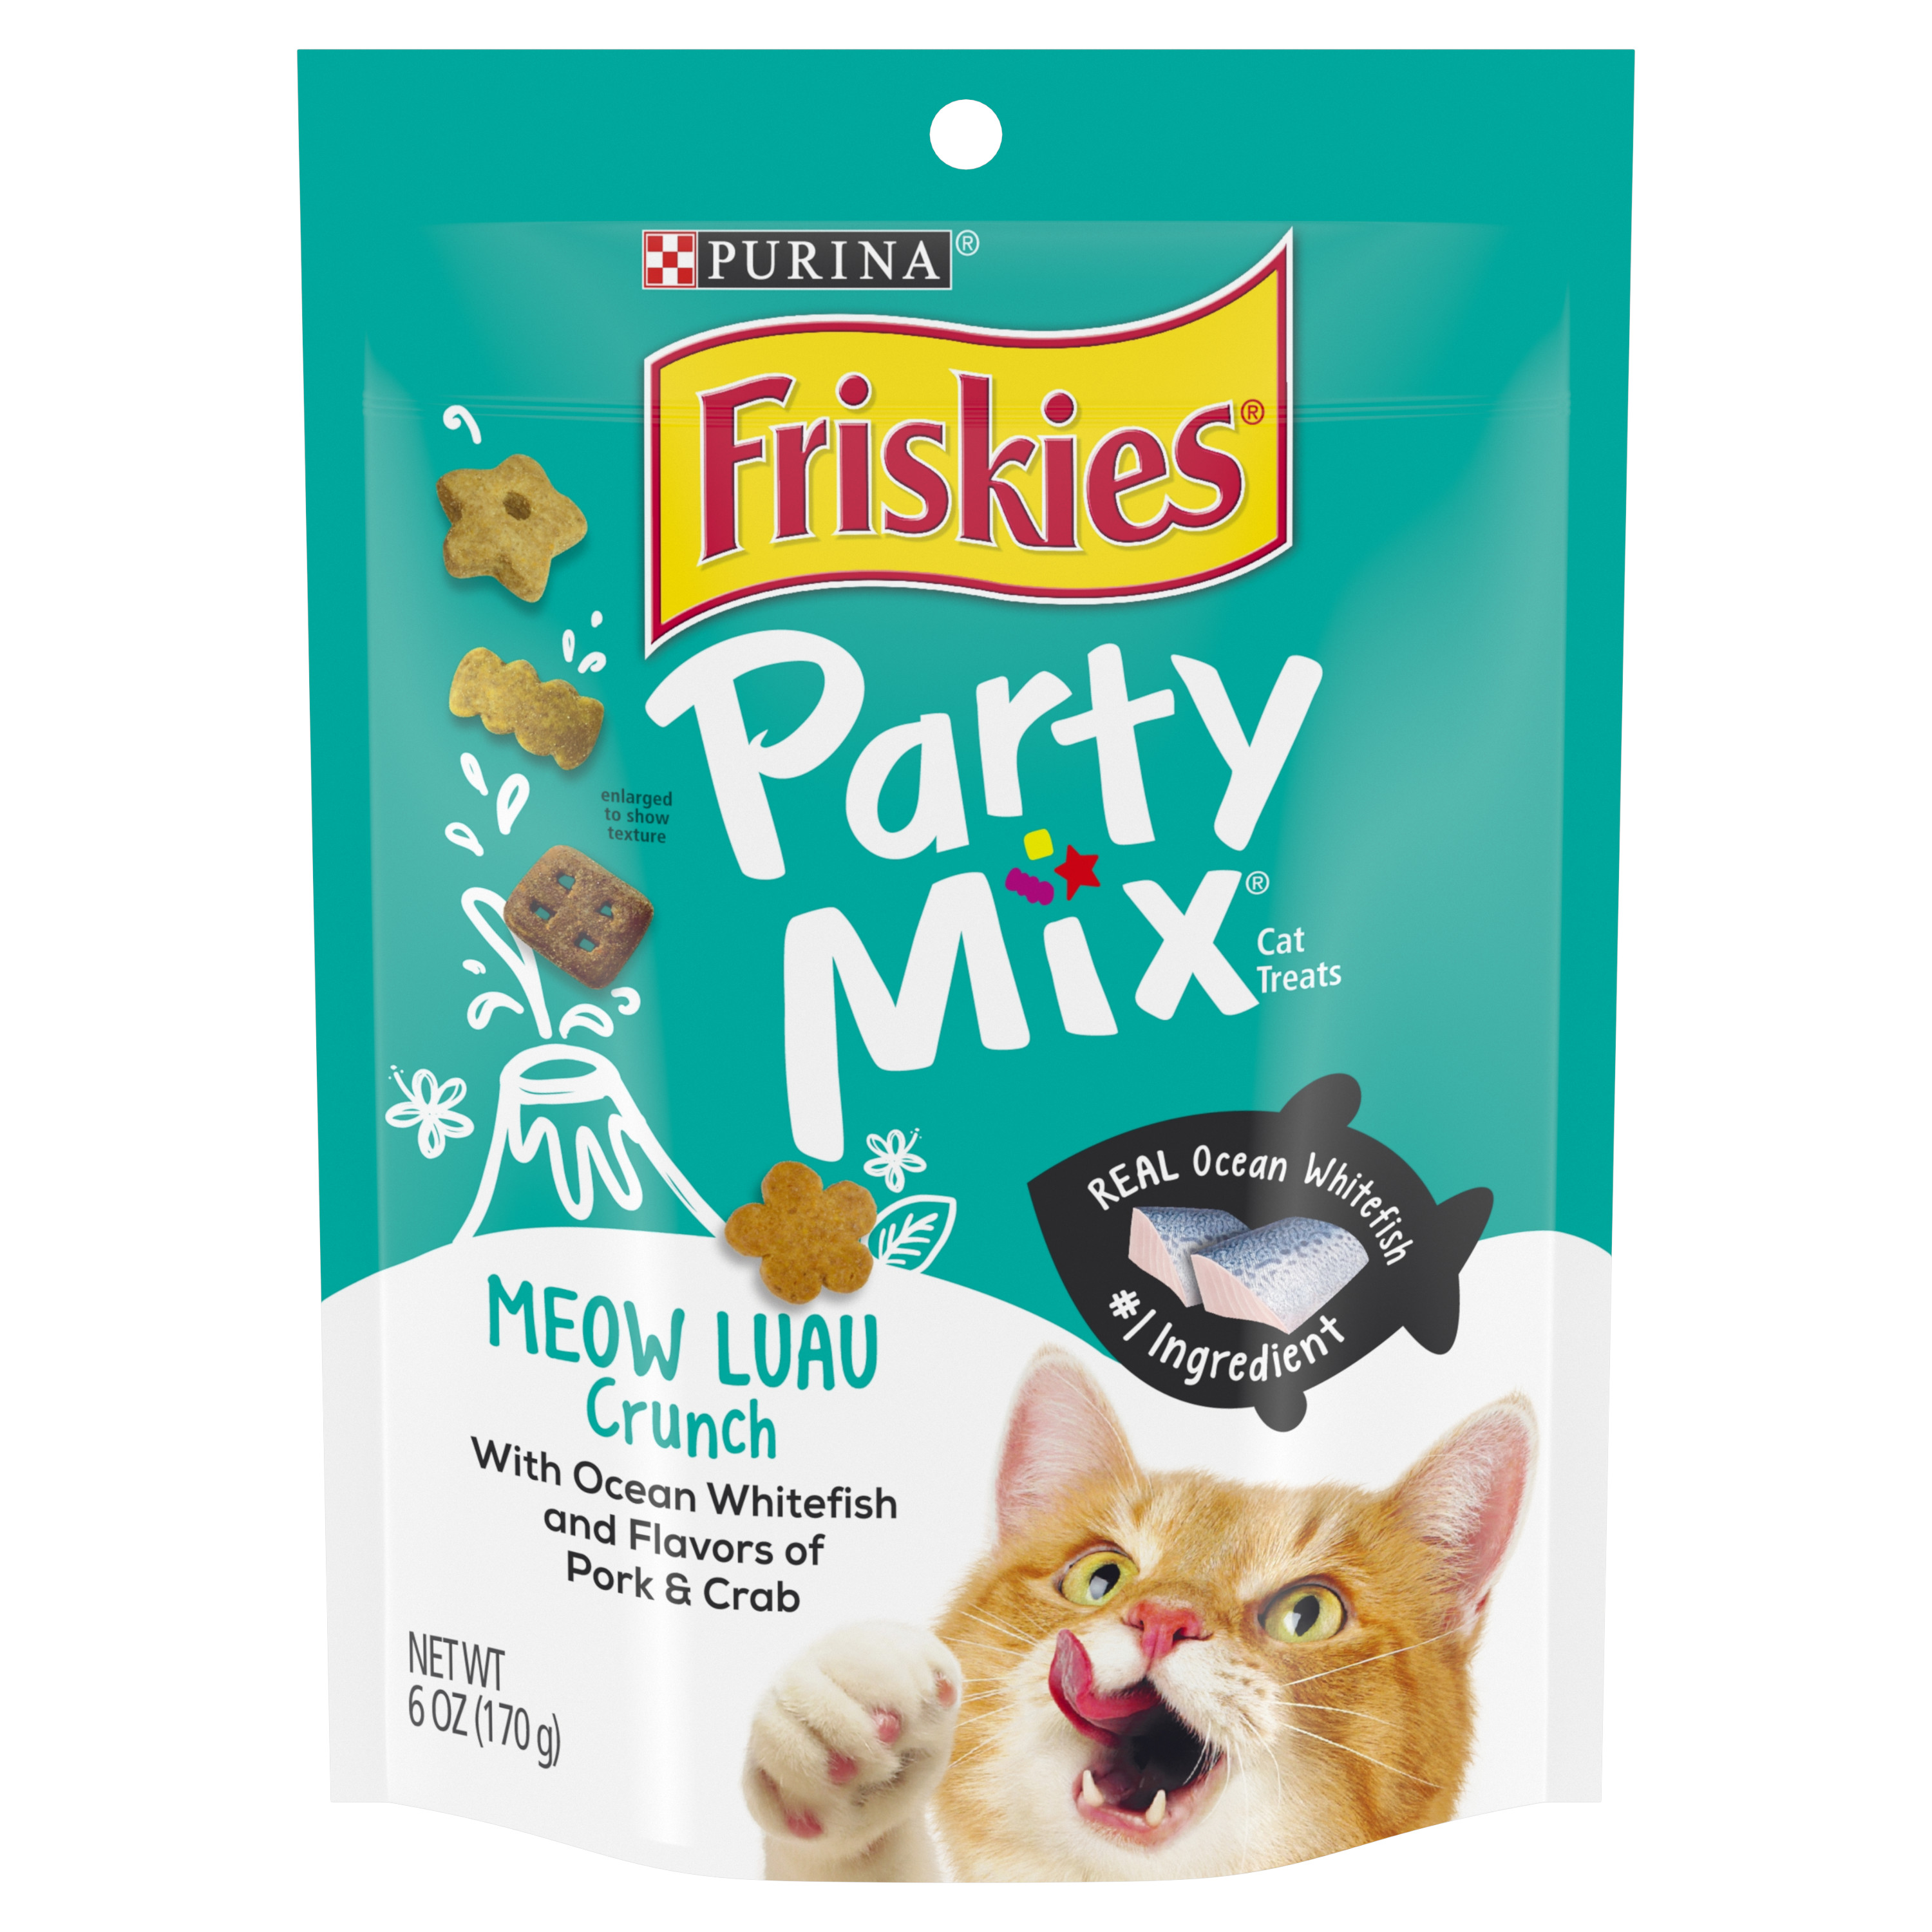 Purina Friskies Party Mix Meow Luau Crunch Adult Cat Treats - 6 oz. Pouch